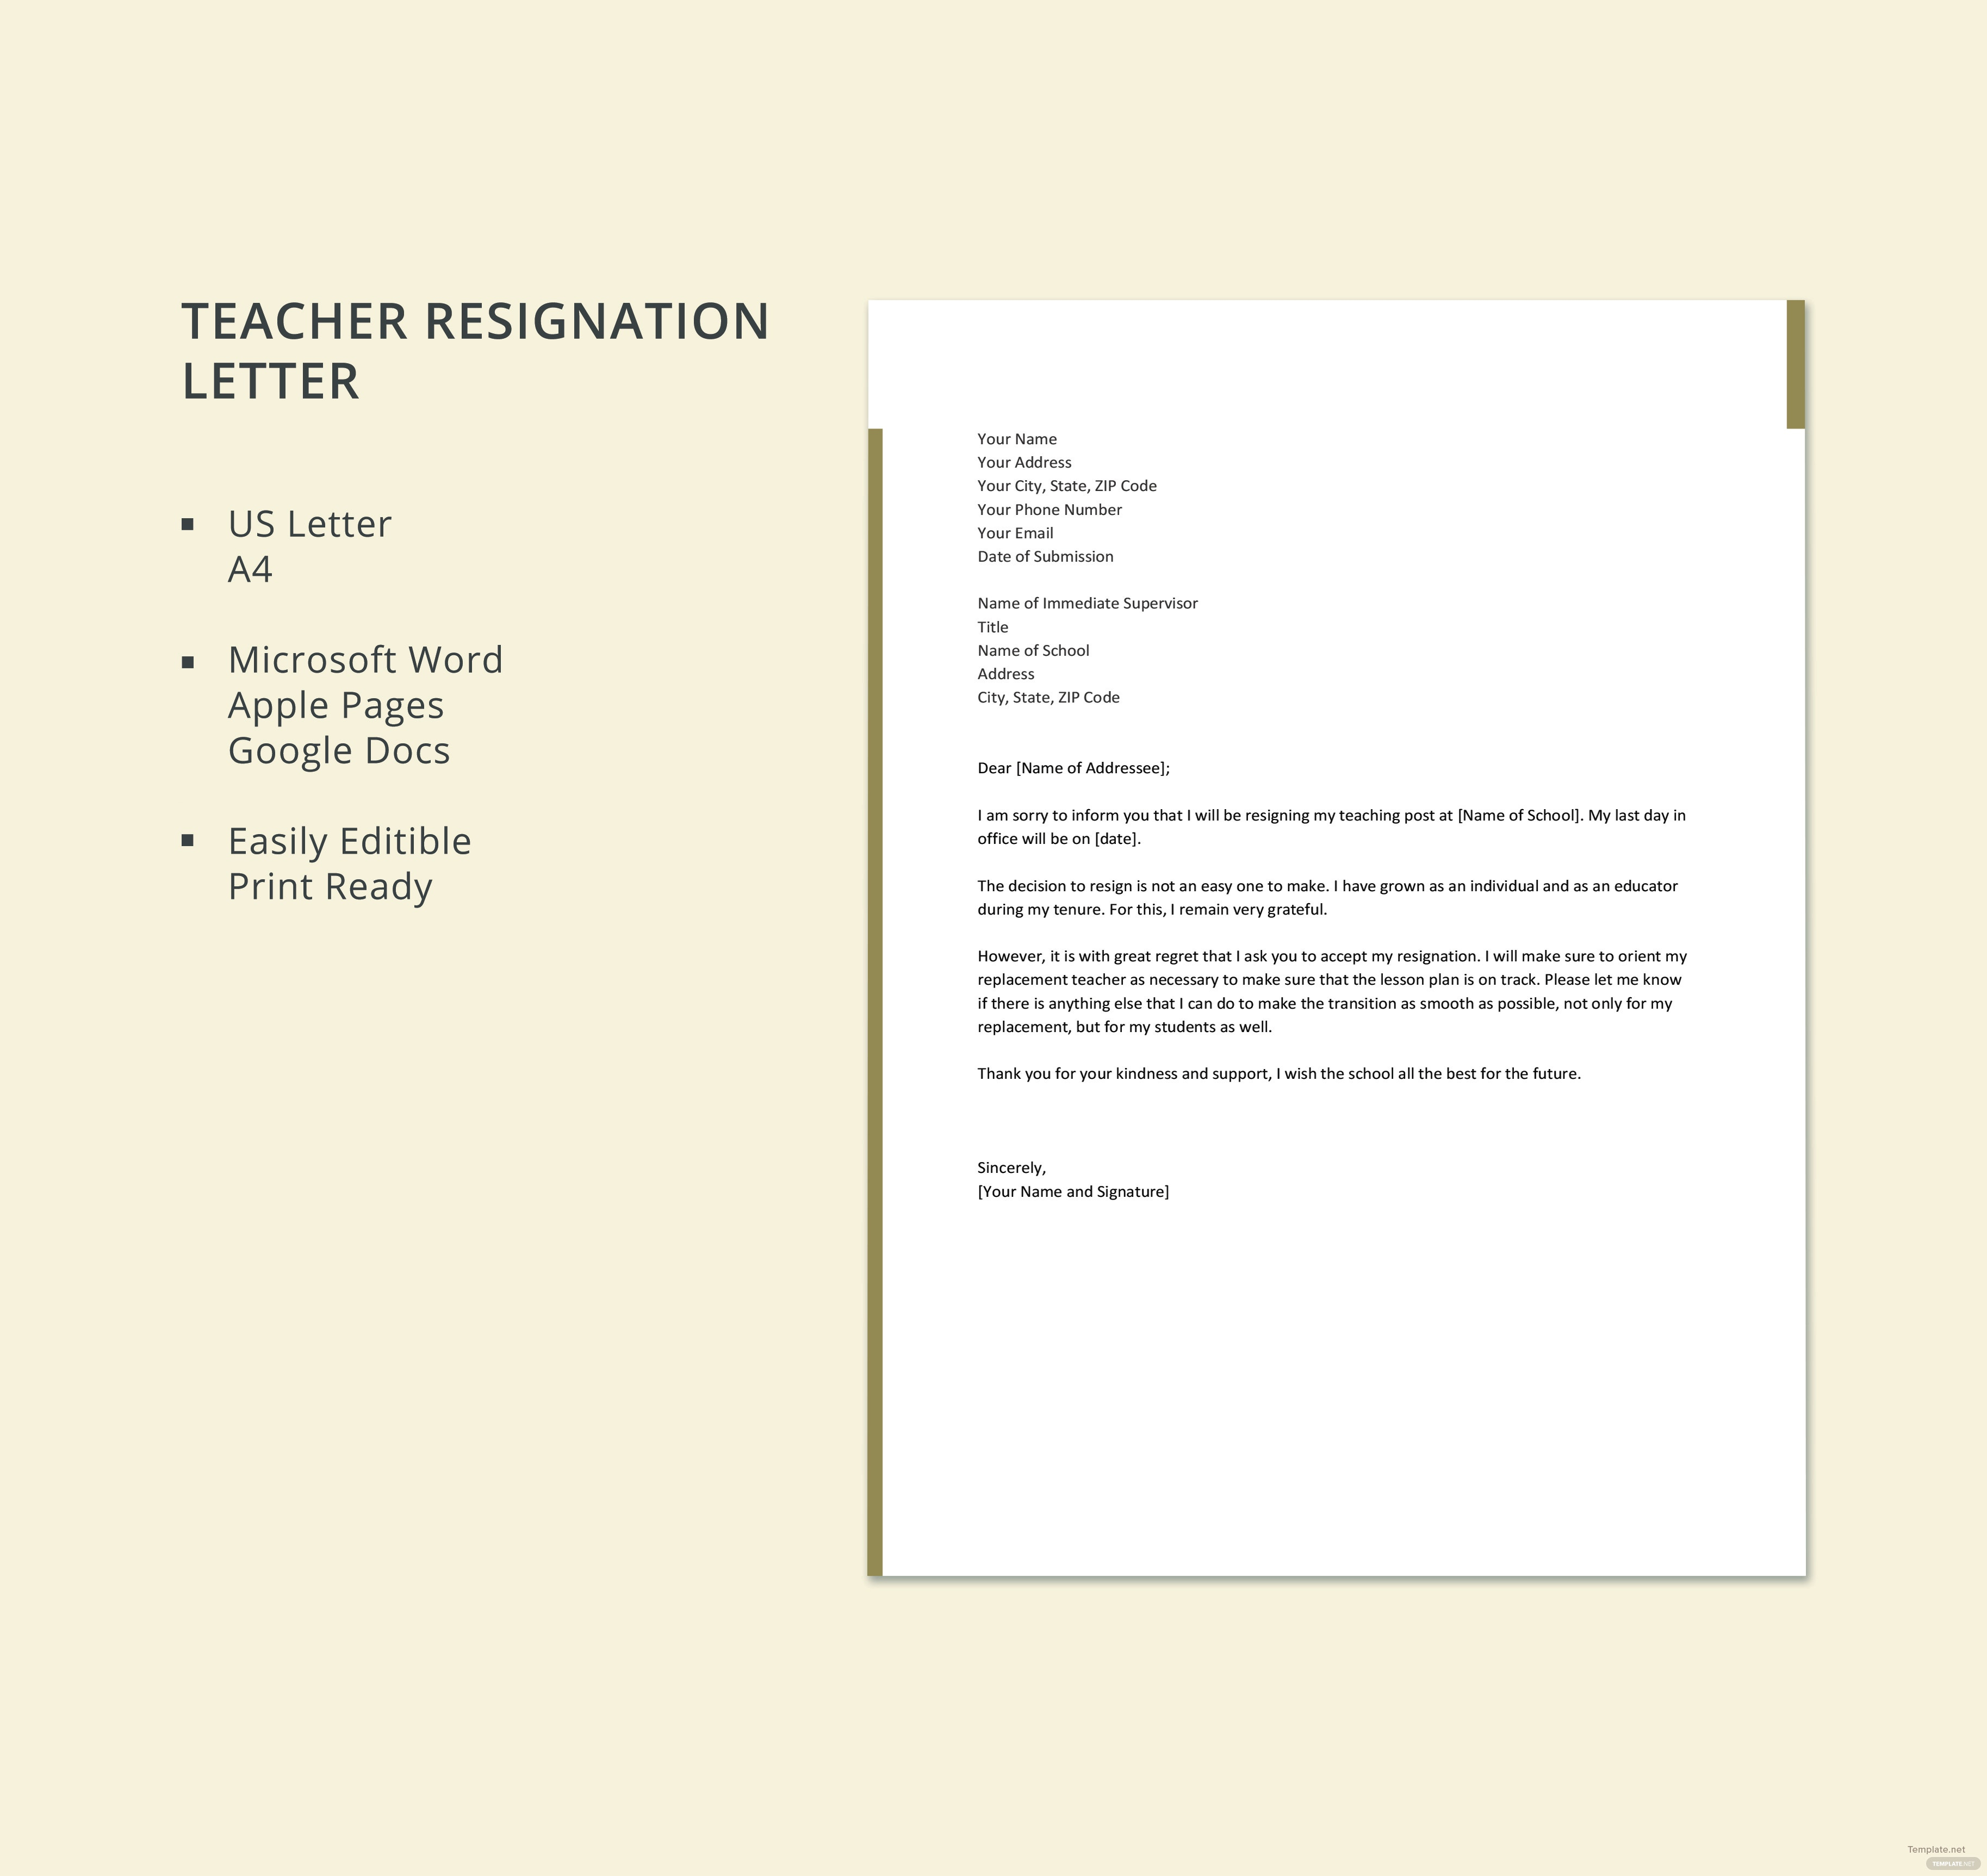 Ms office letterhead template yelomphonecompany ms office letterhead template spiritdancerdesigns Gallery